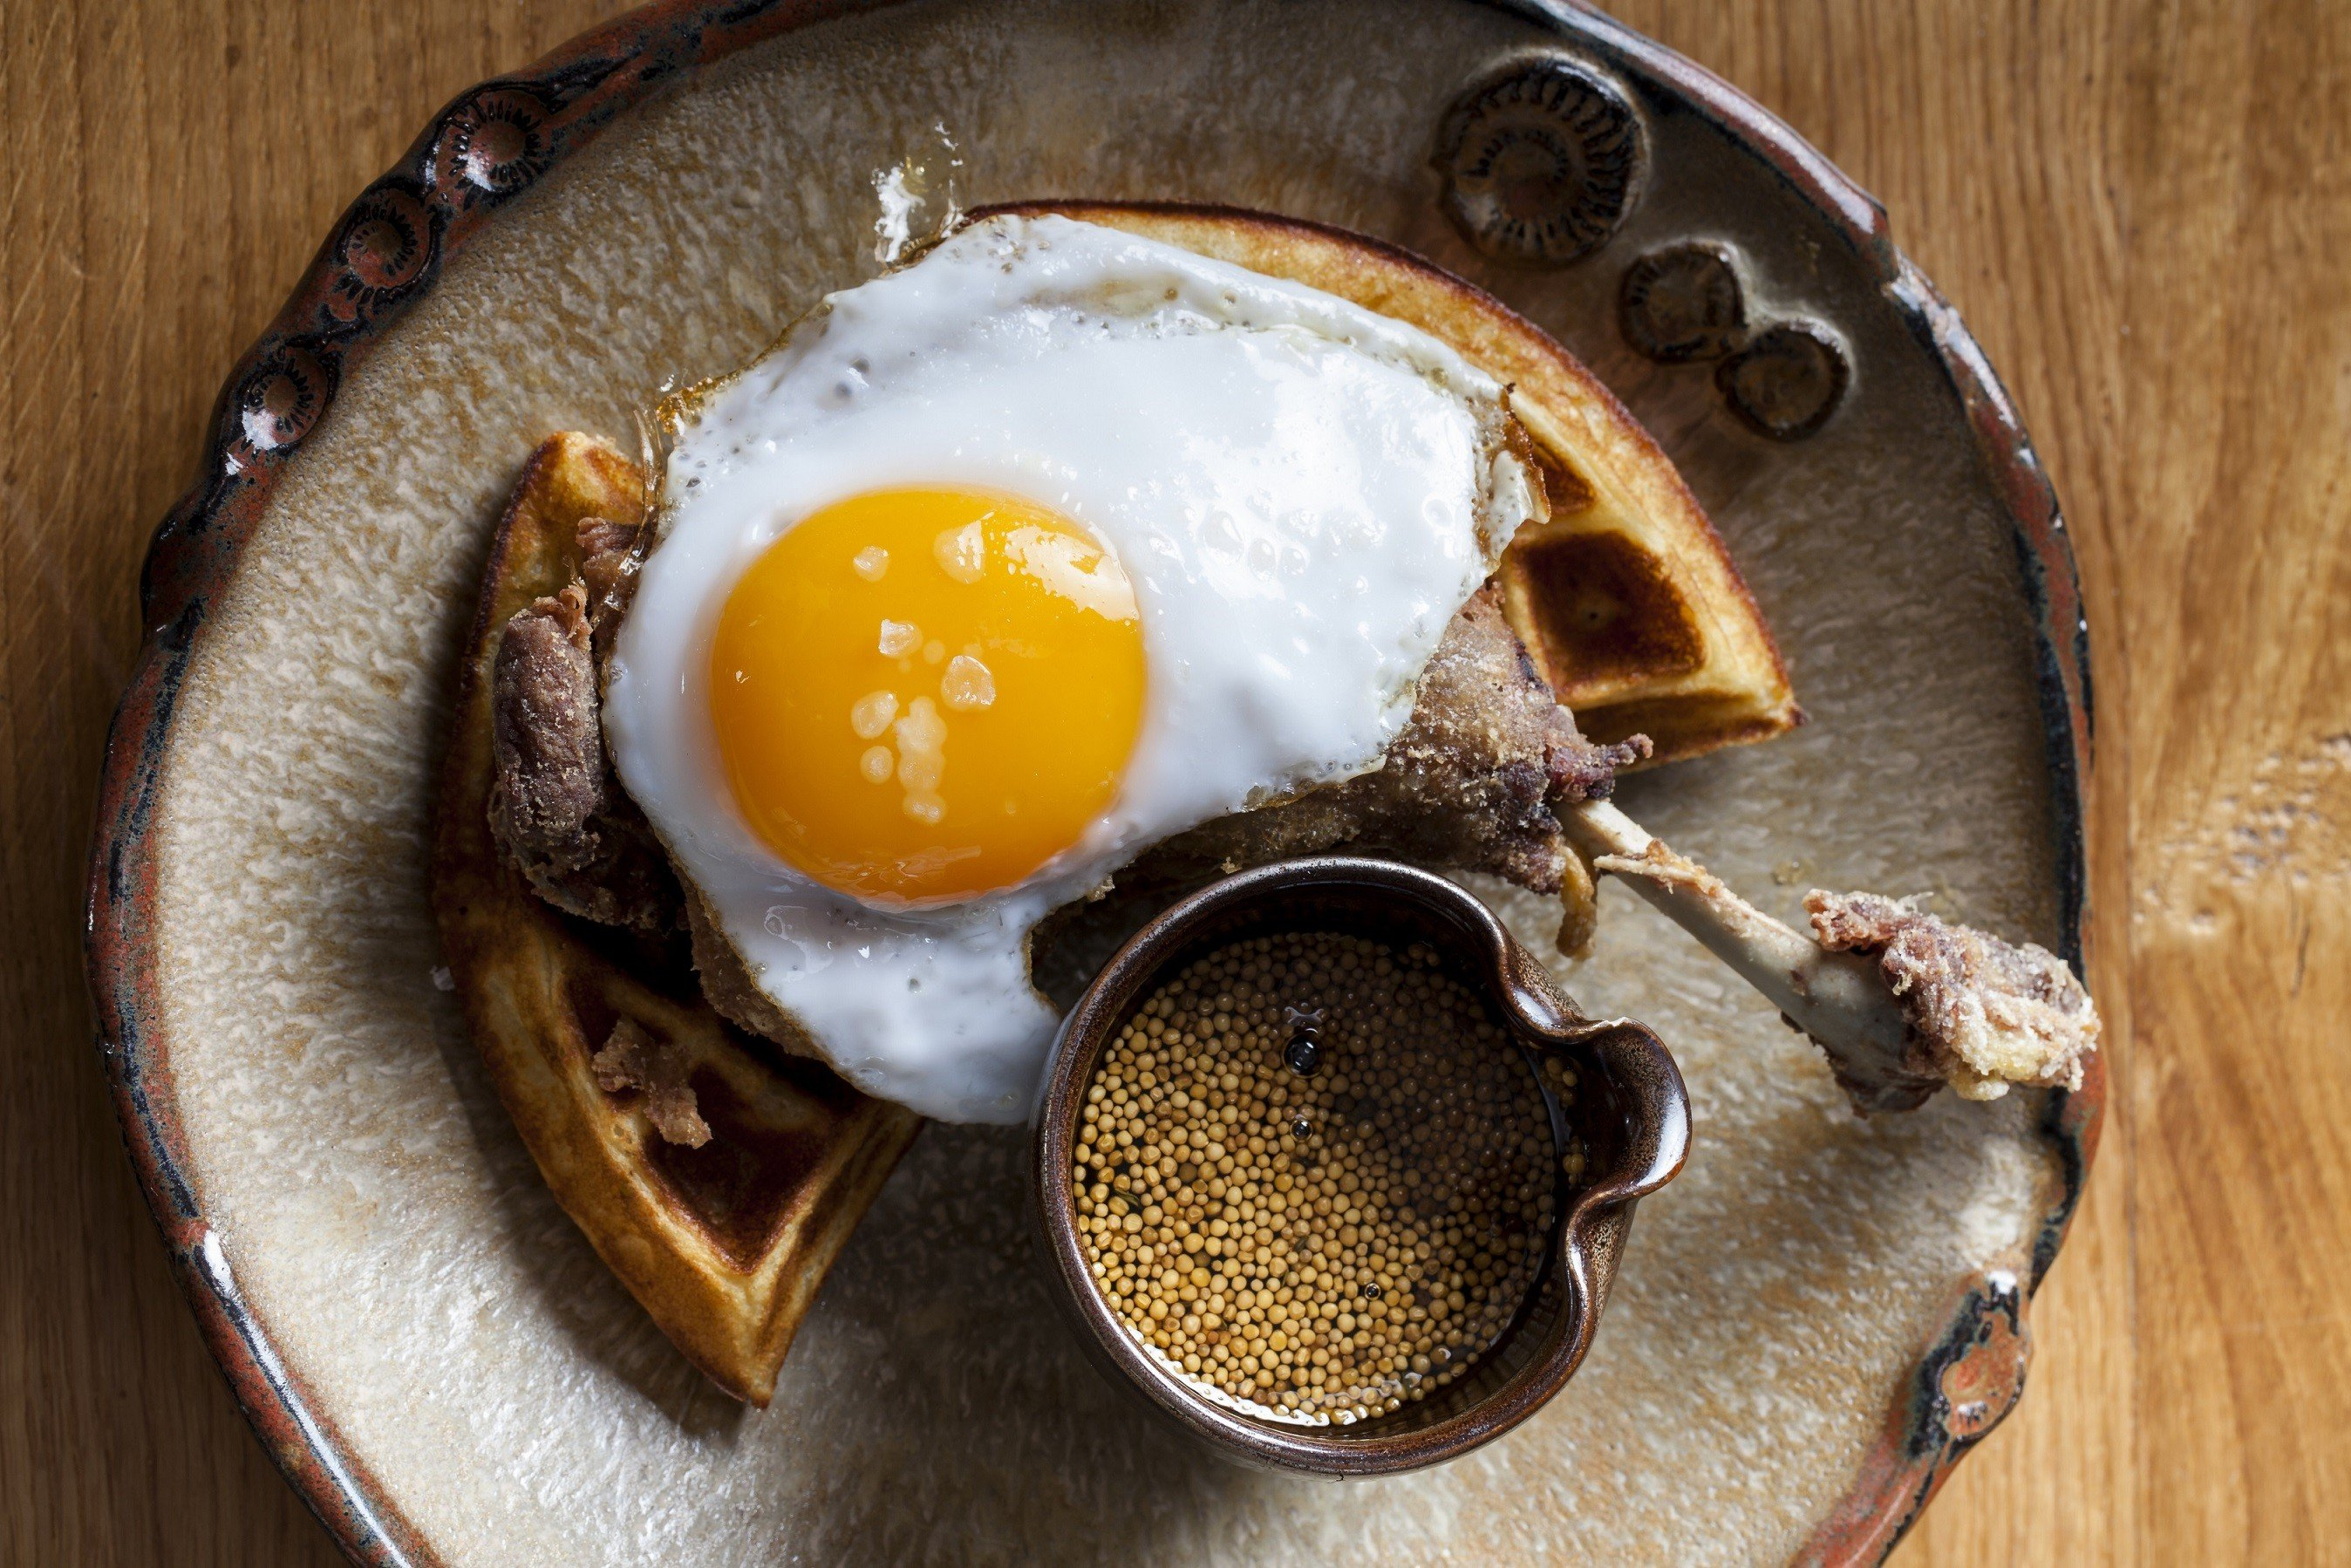 London restaurant Duck & Waffle to open in Hong Kong at IFC Mall